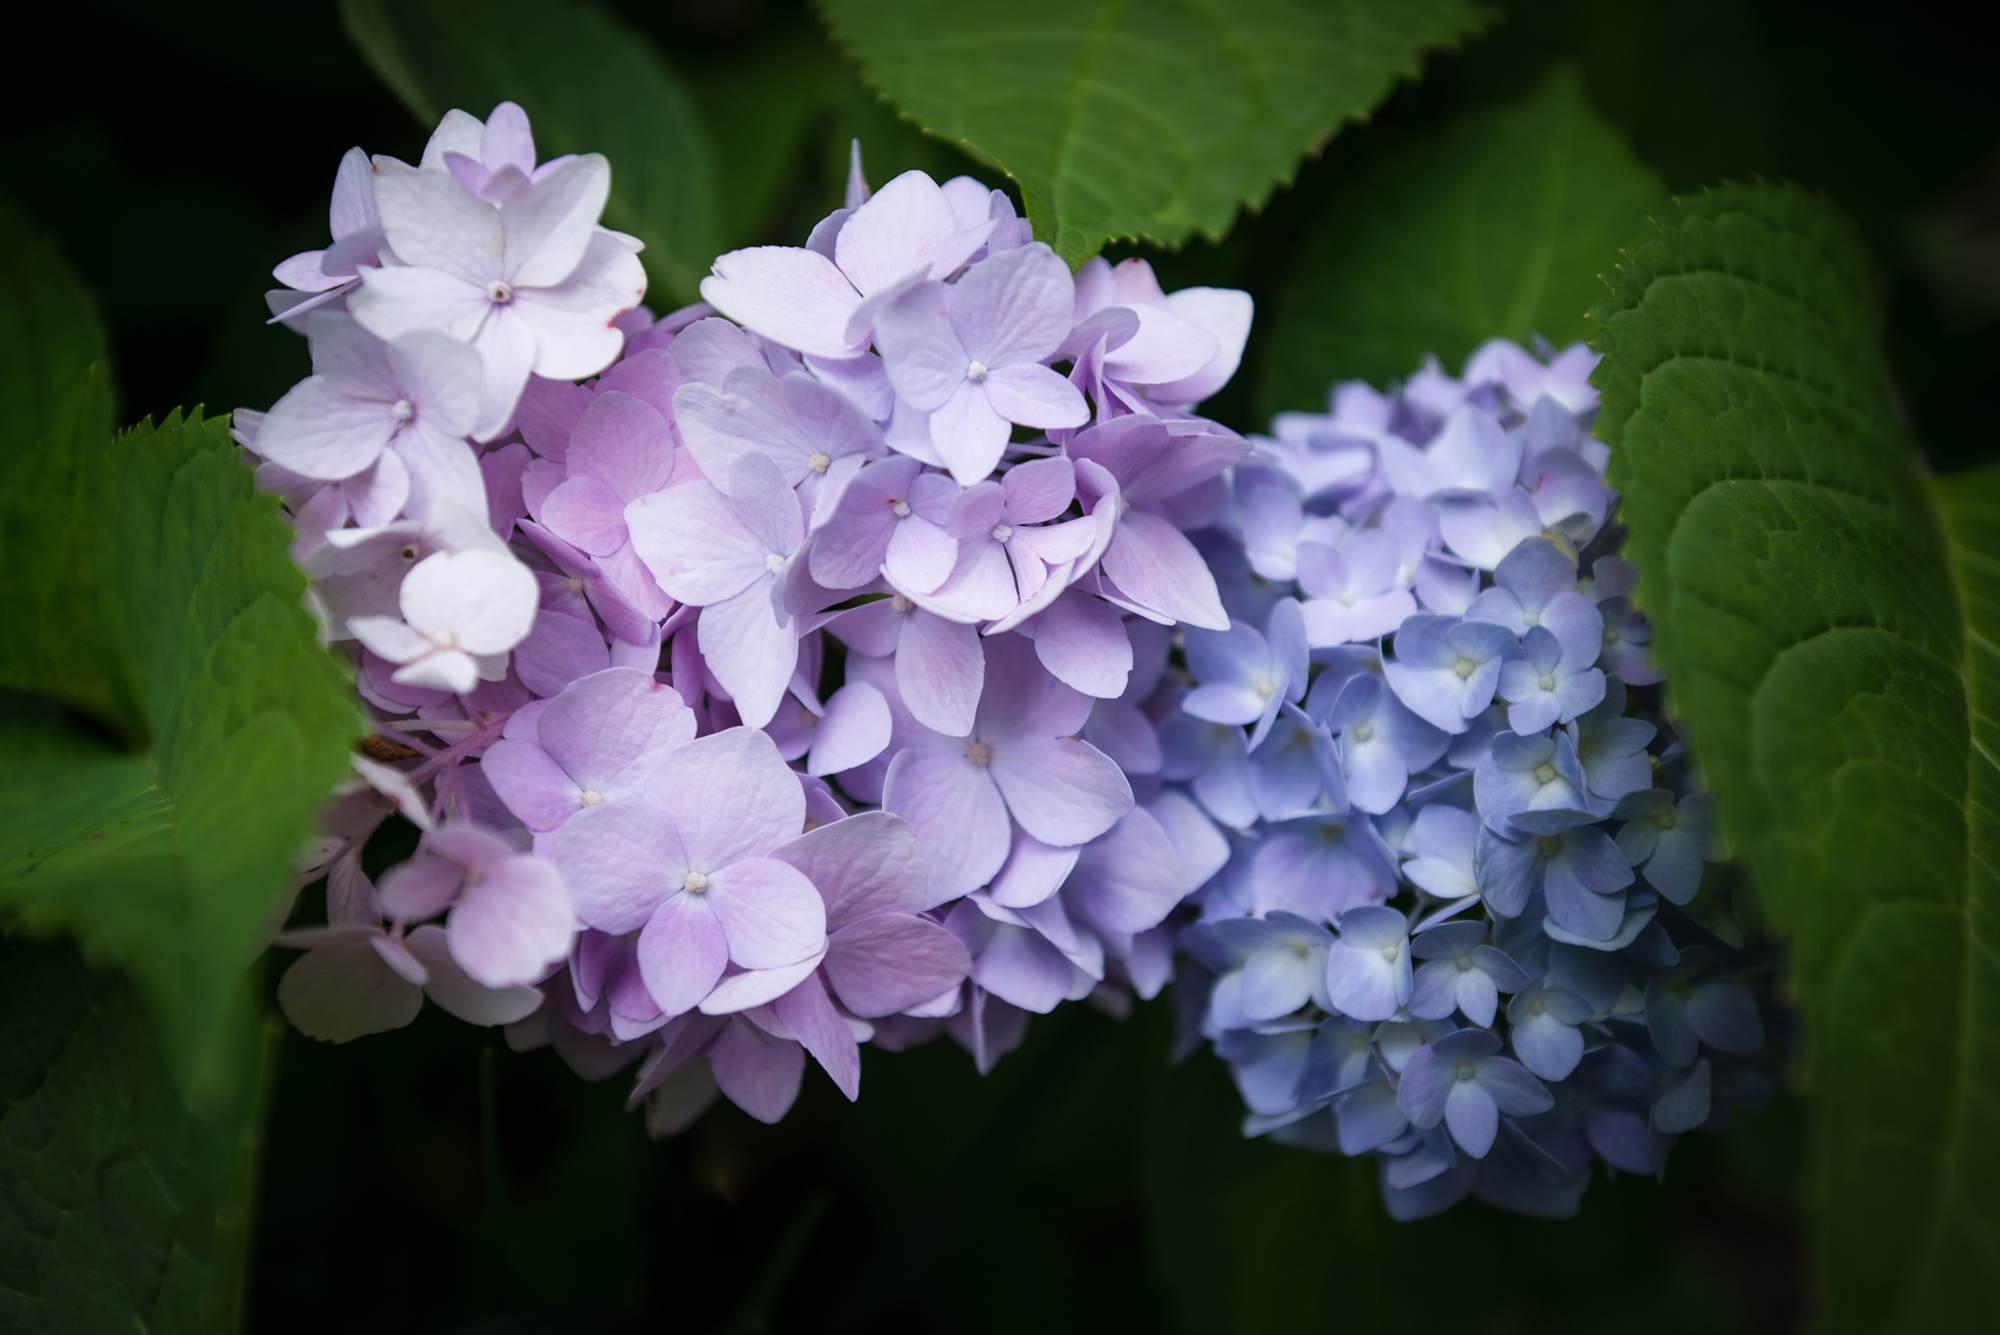 #hydrangea, #july, #pinkandblue, #favoriteflower, #nature, #flowers, #nikon, #sewickley, #pennsylvania